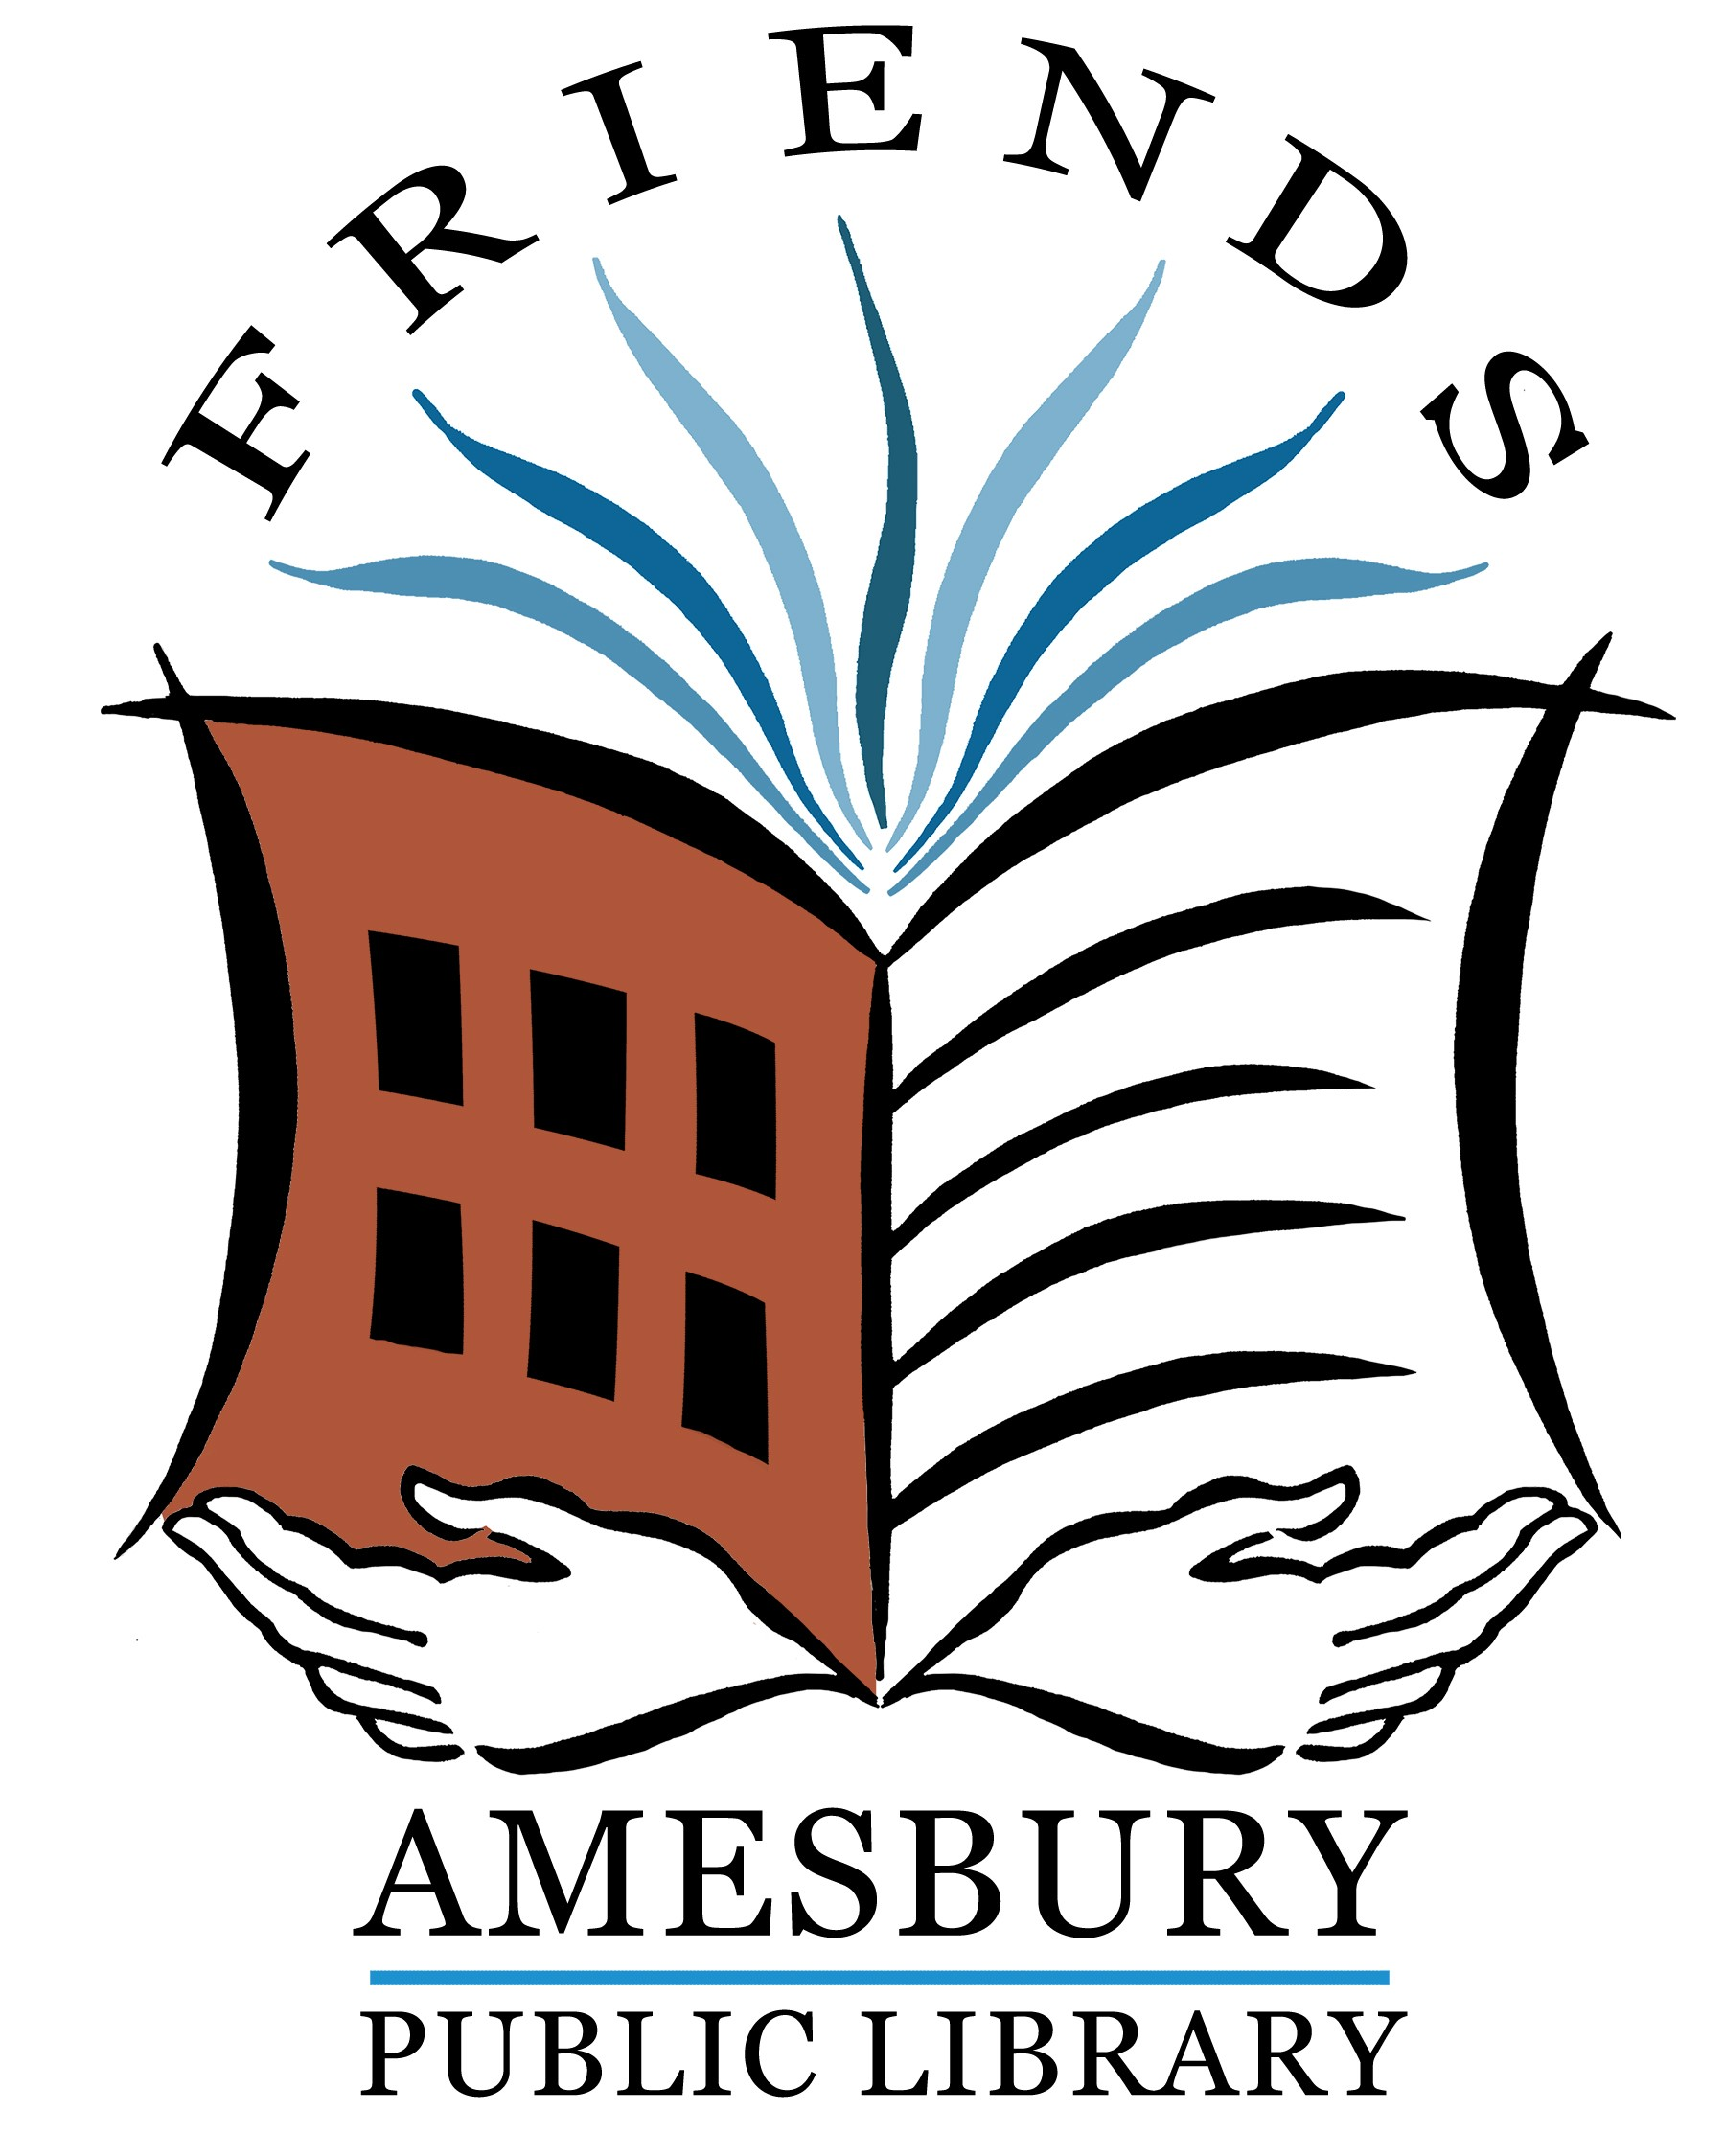 Friends of the Amesbury Public Library.